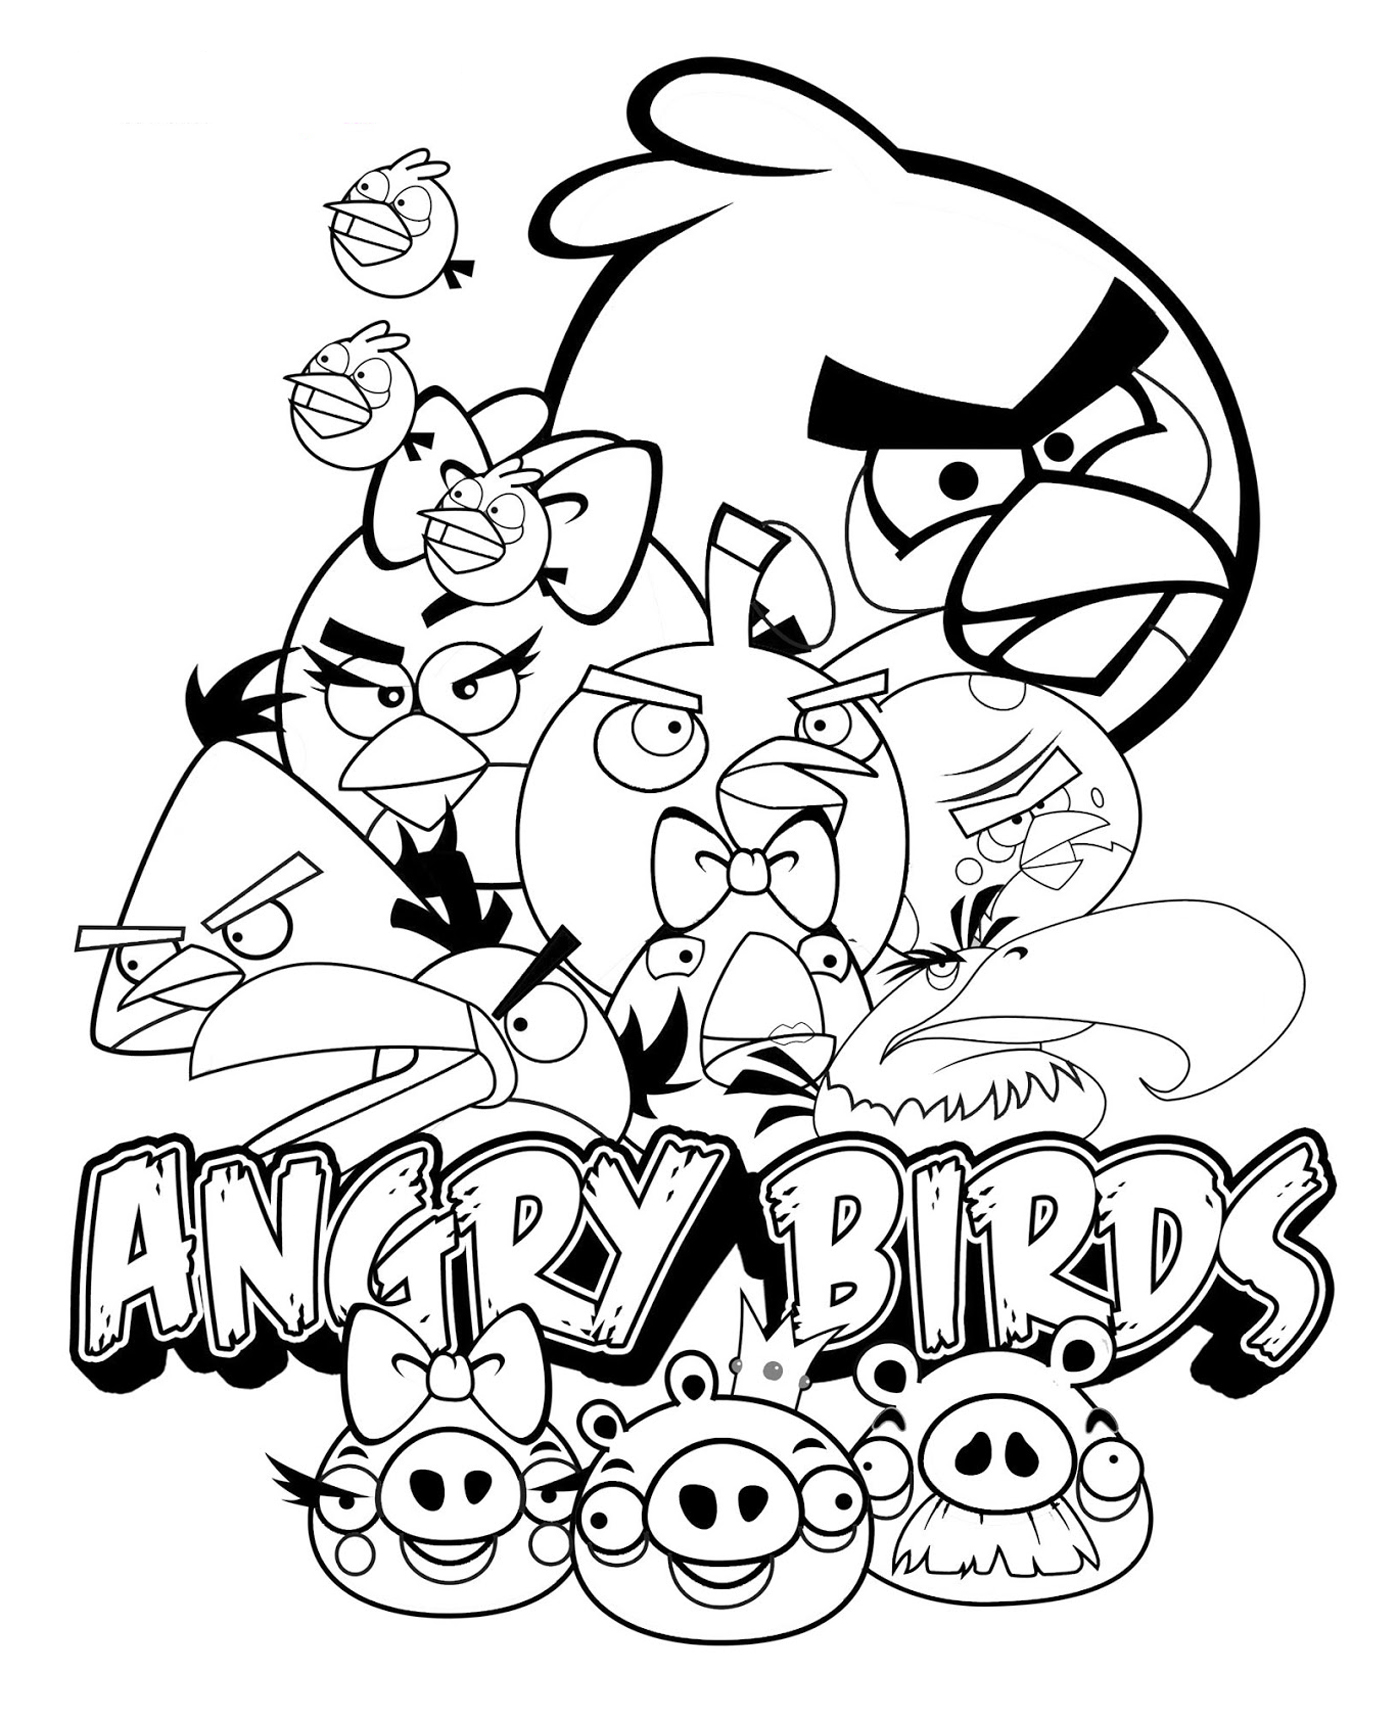 angry bird colouring pictures to print free printable angry bird coloring pages for kids angry colouring pictures to bird print